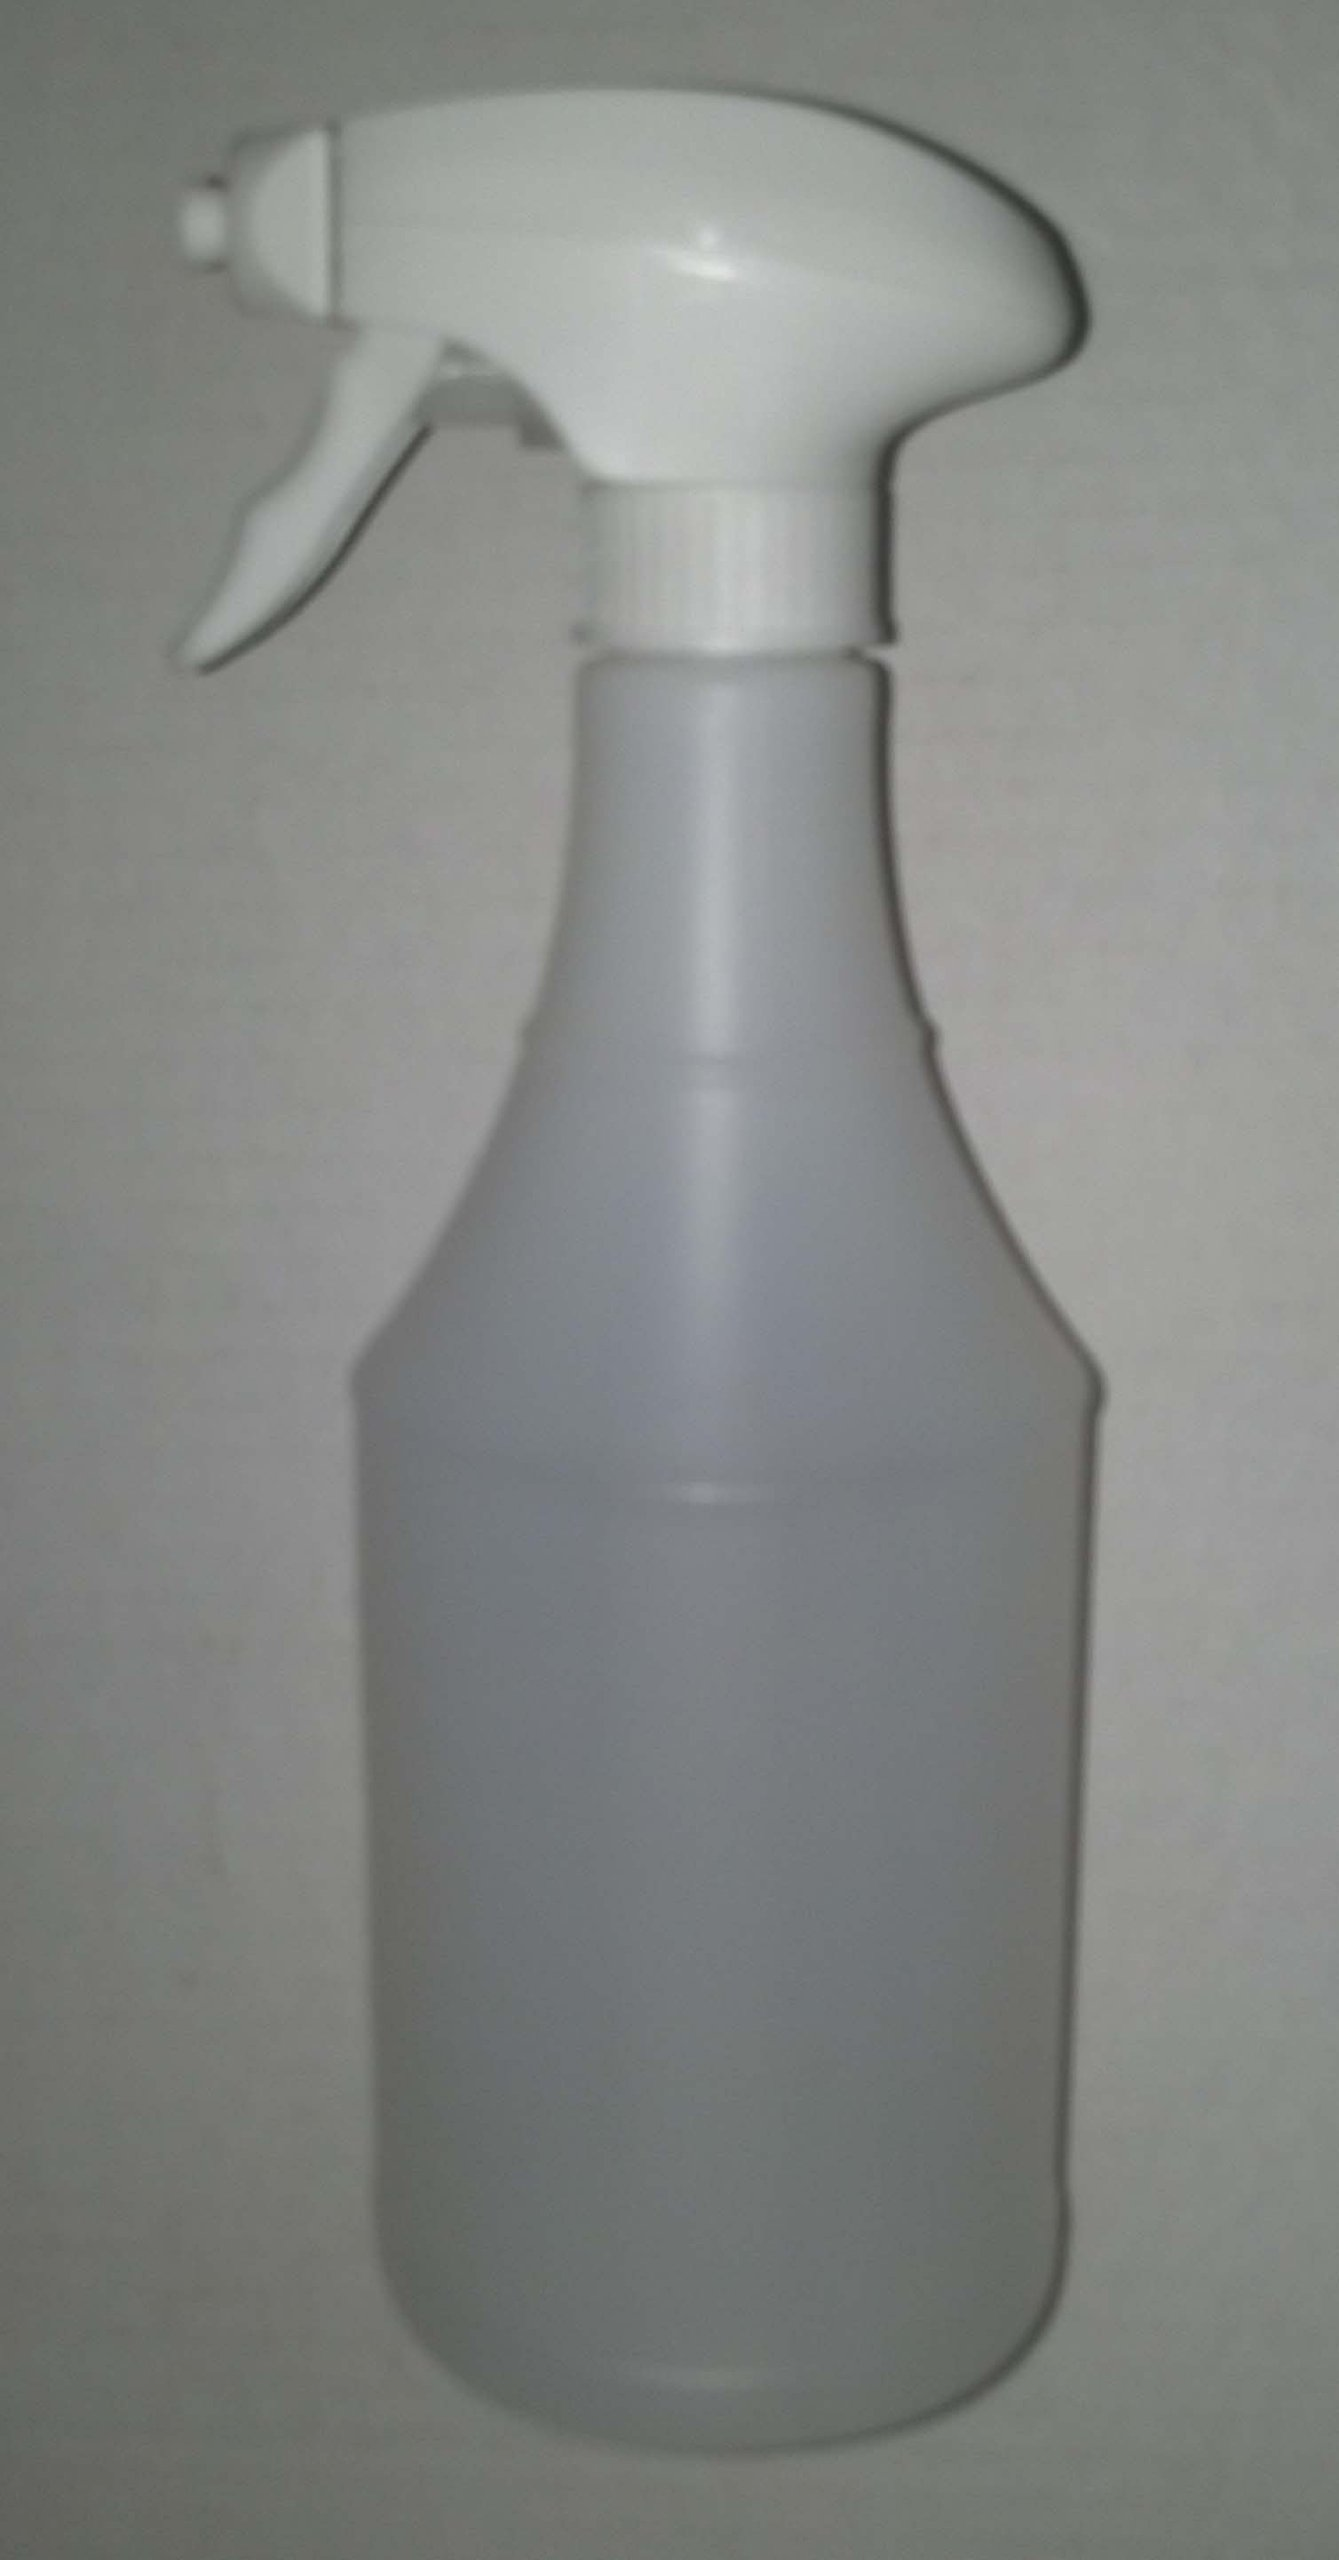 24 fl oz. Plastic Crafte Style Trigger Spray Bottle. Includes Foaming, Low Profile, Trigger Spray Head. Packaged 126 per box.